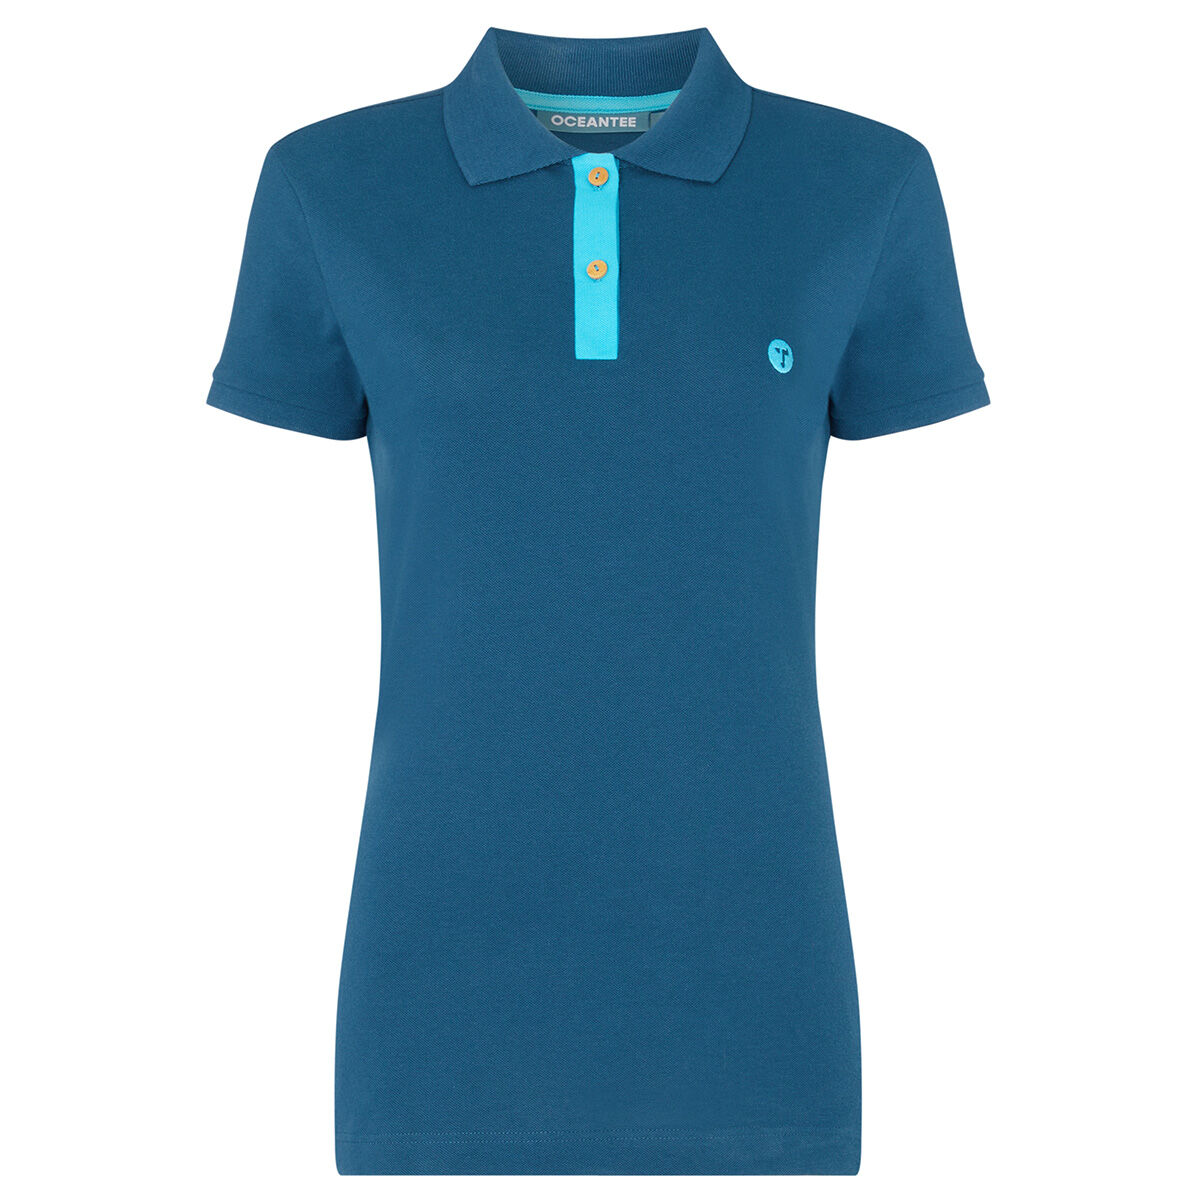 OCEANTEE Mako Ladies Golf Polo Shirt, Female, Navy, XS